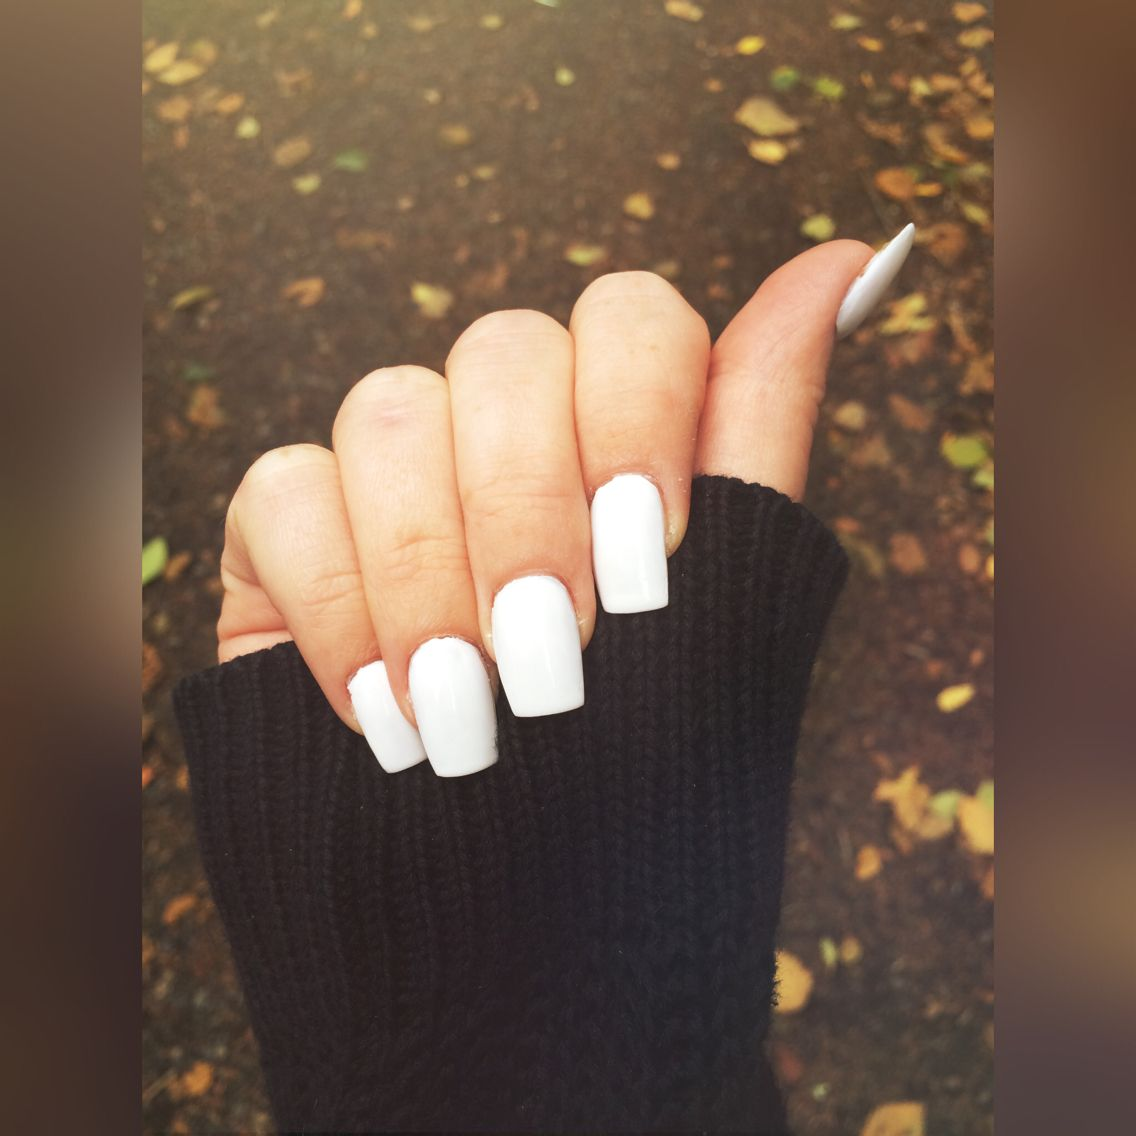 White Square Acrylic Nails Clean Stylish Pretty And A Bit Of Fall In The Background White Acrylic Nails Square Acrylic Nails Oval Acrylic Nails